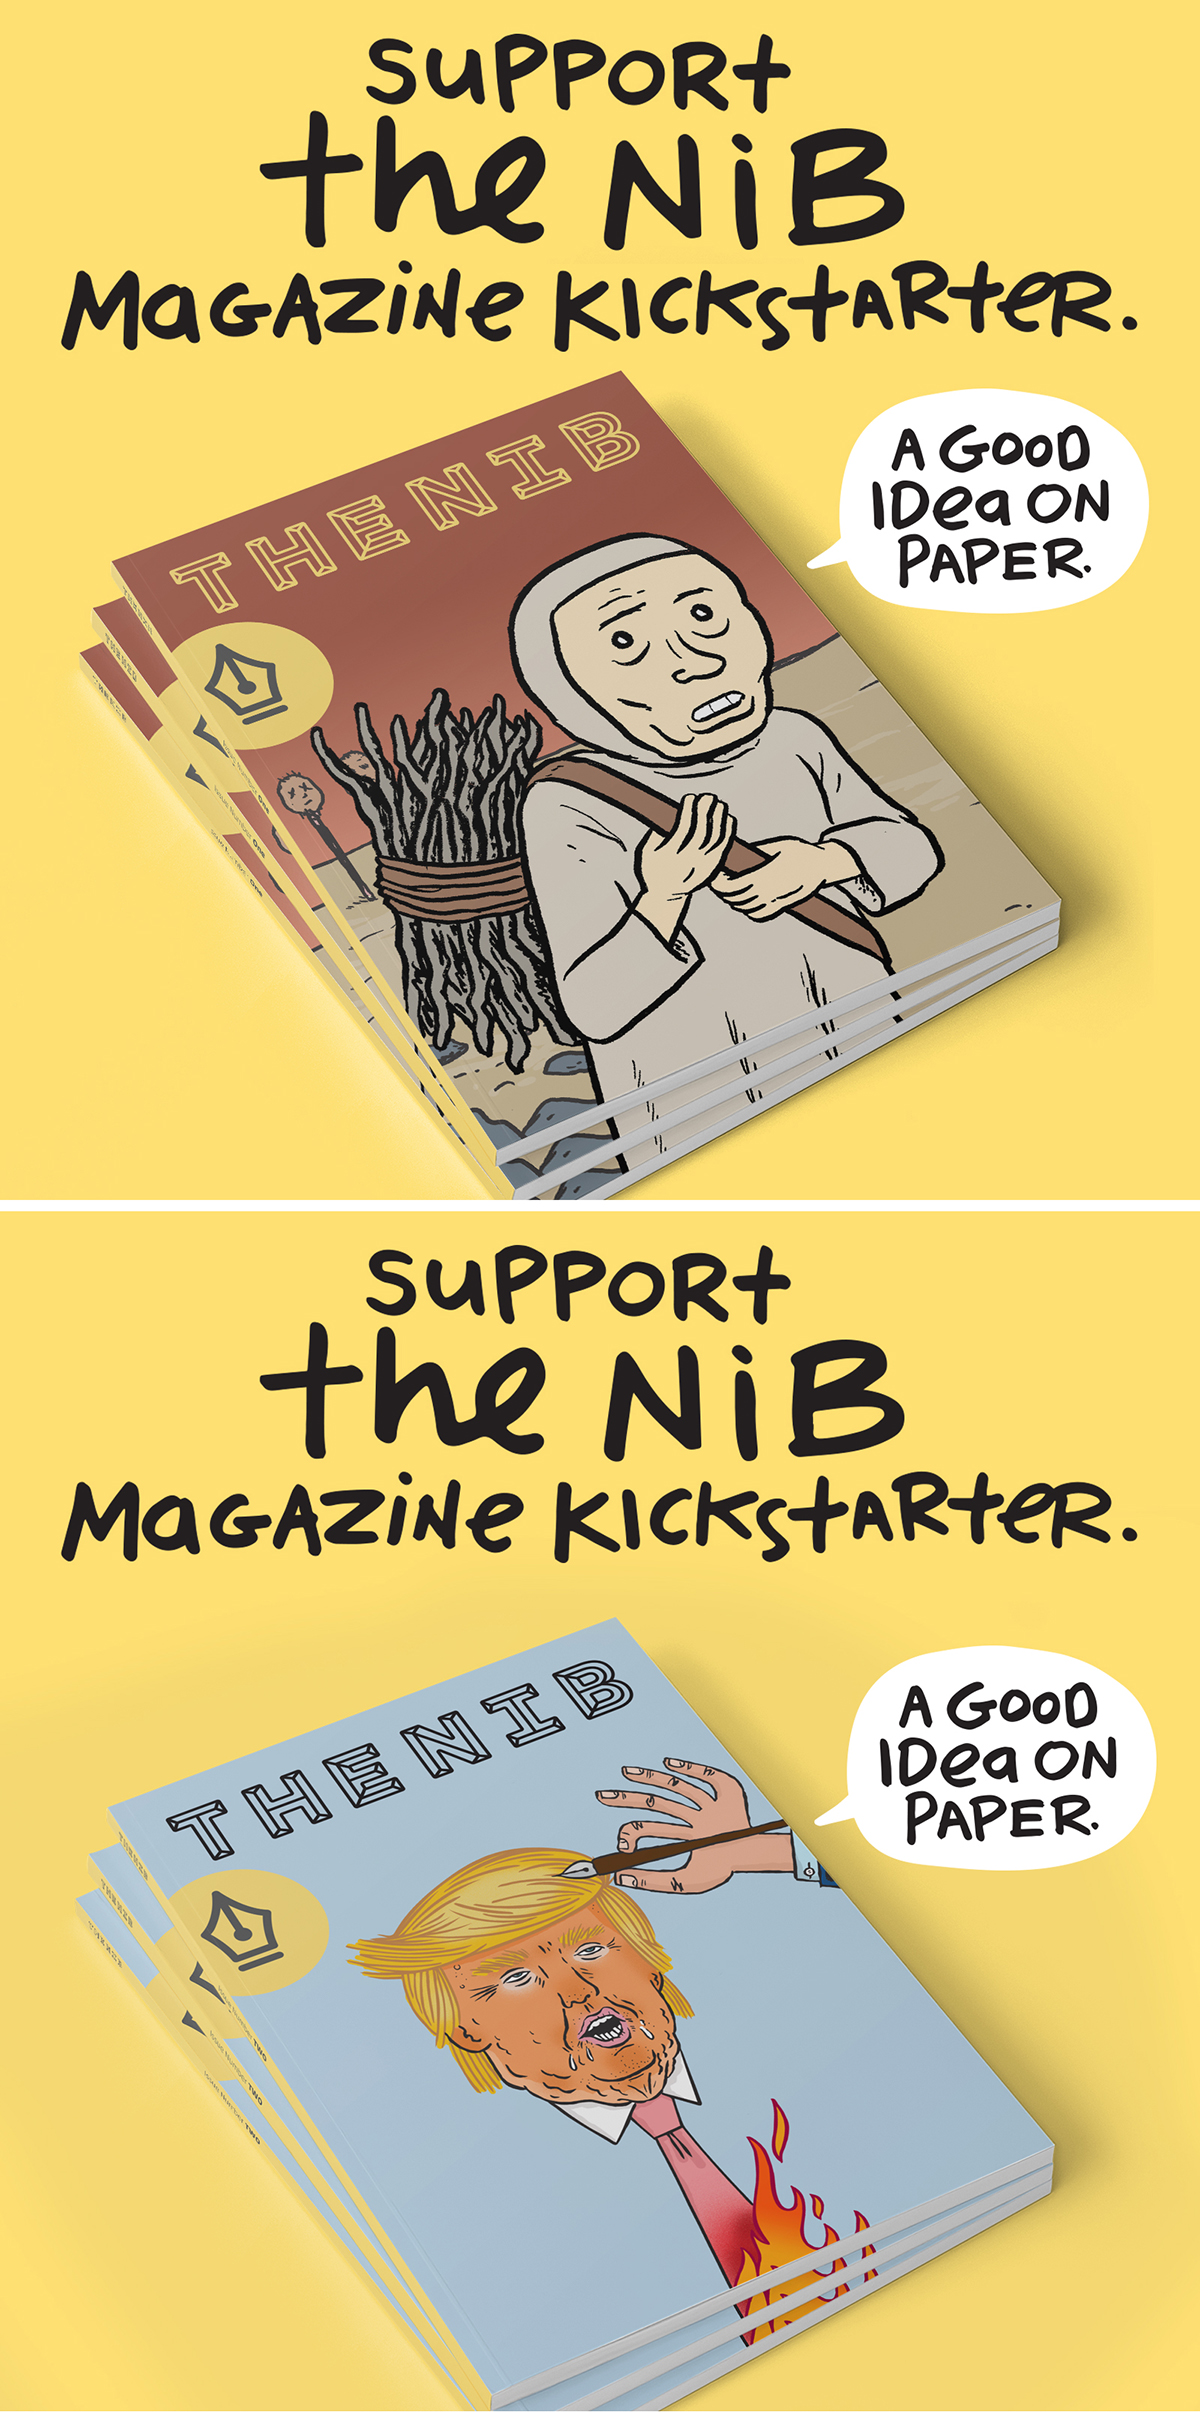 Drawmark blog, The Nib Magazine Kickstarter advertising campaign